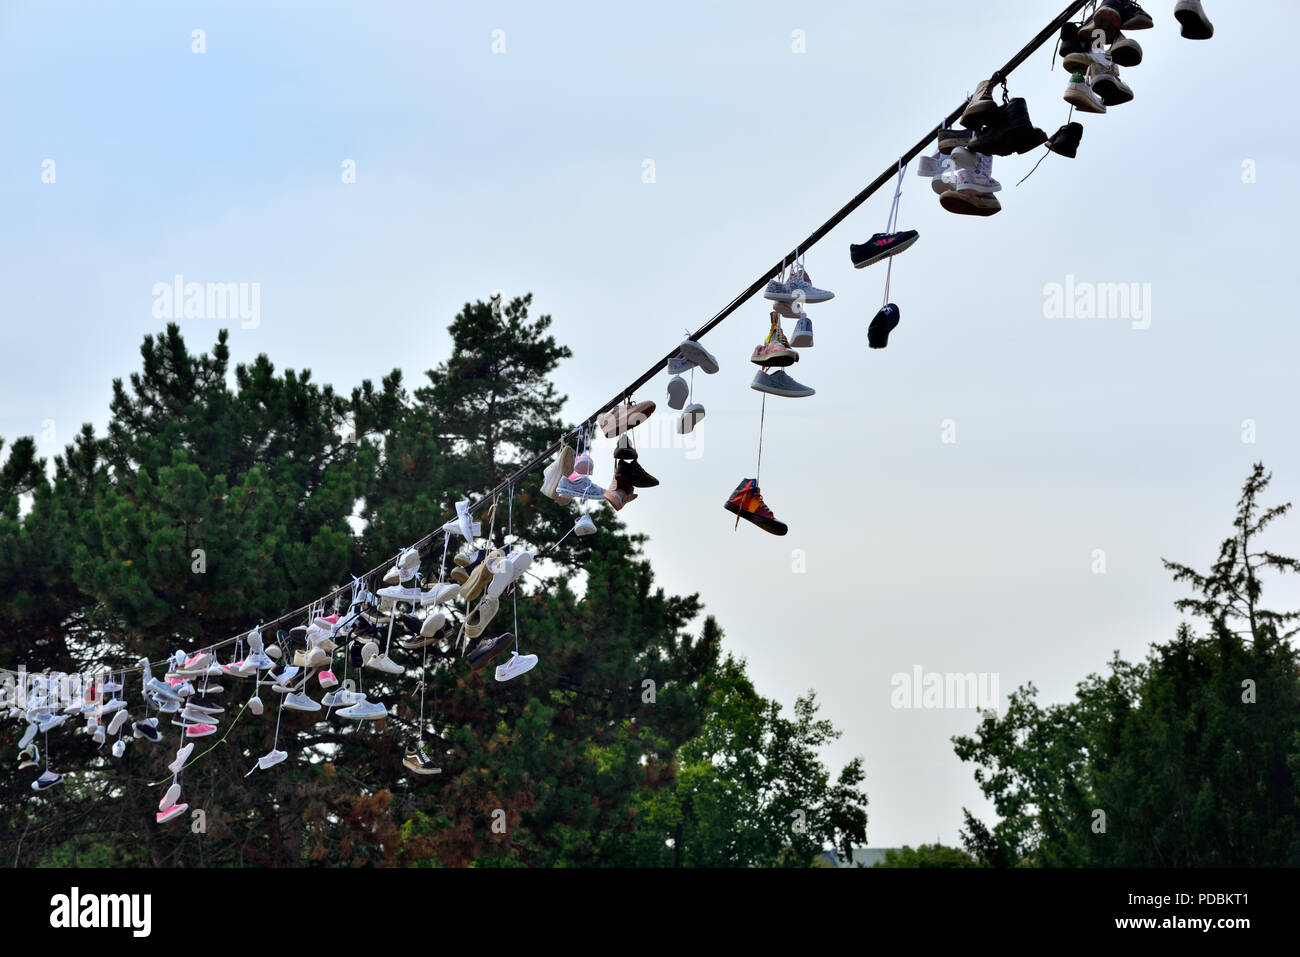 Shoes and boots hanging from an overhead wire at Prague Metronome, Czech Republic - Stock Image